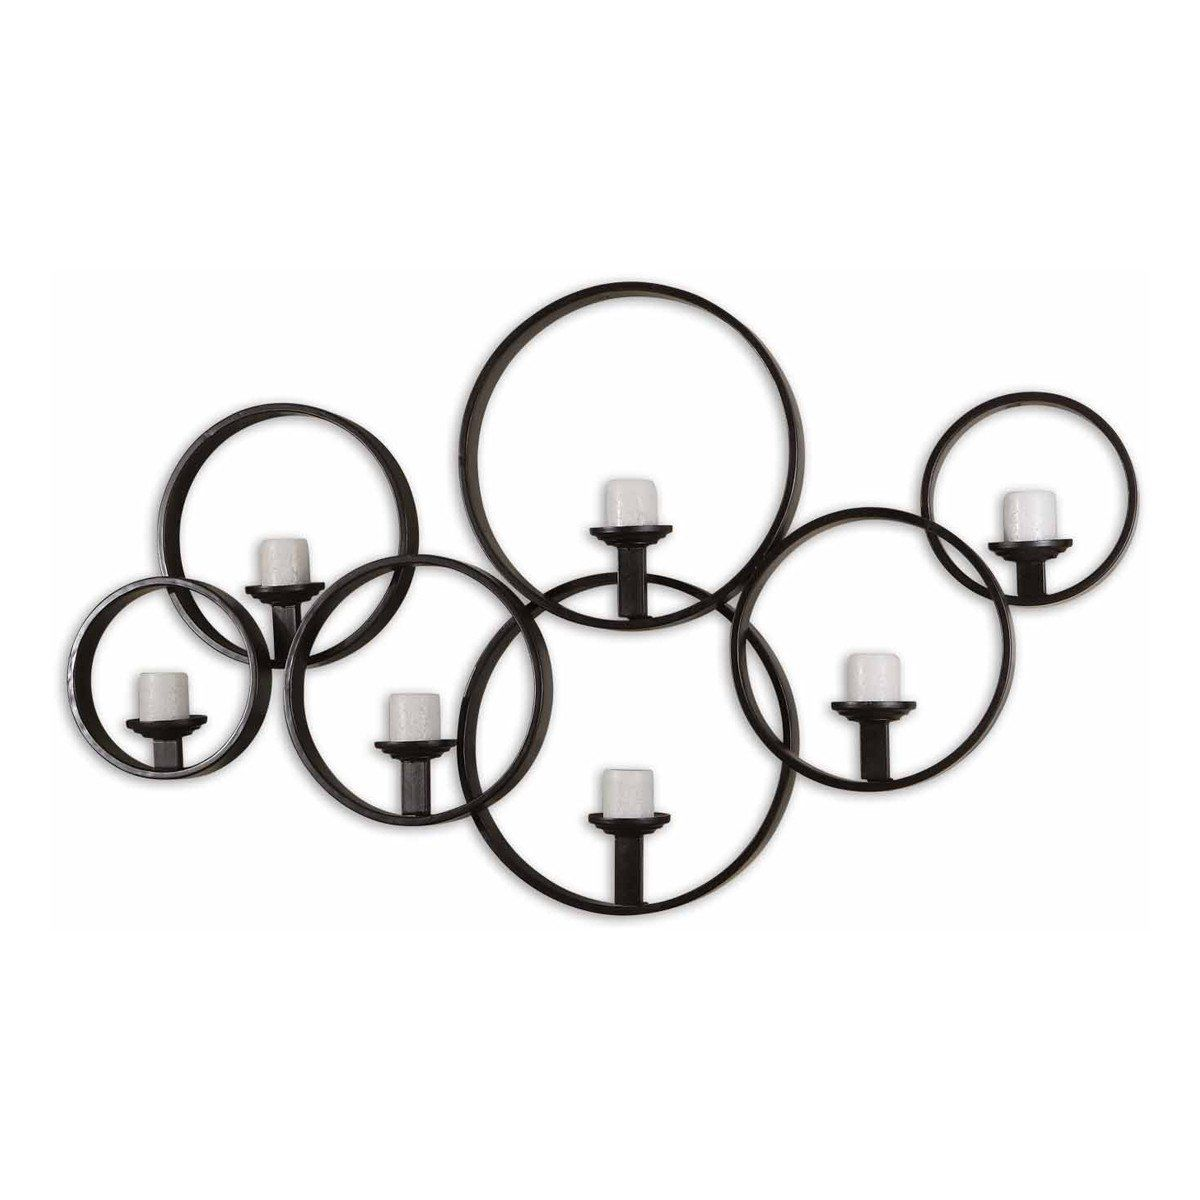 Kadoka decorative wall candle holder products